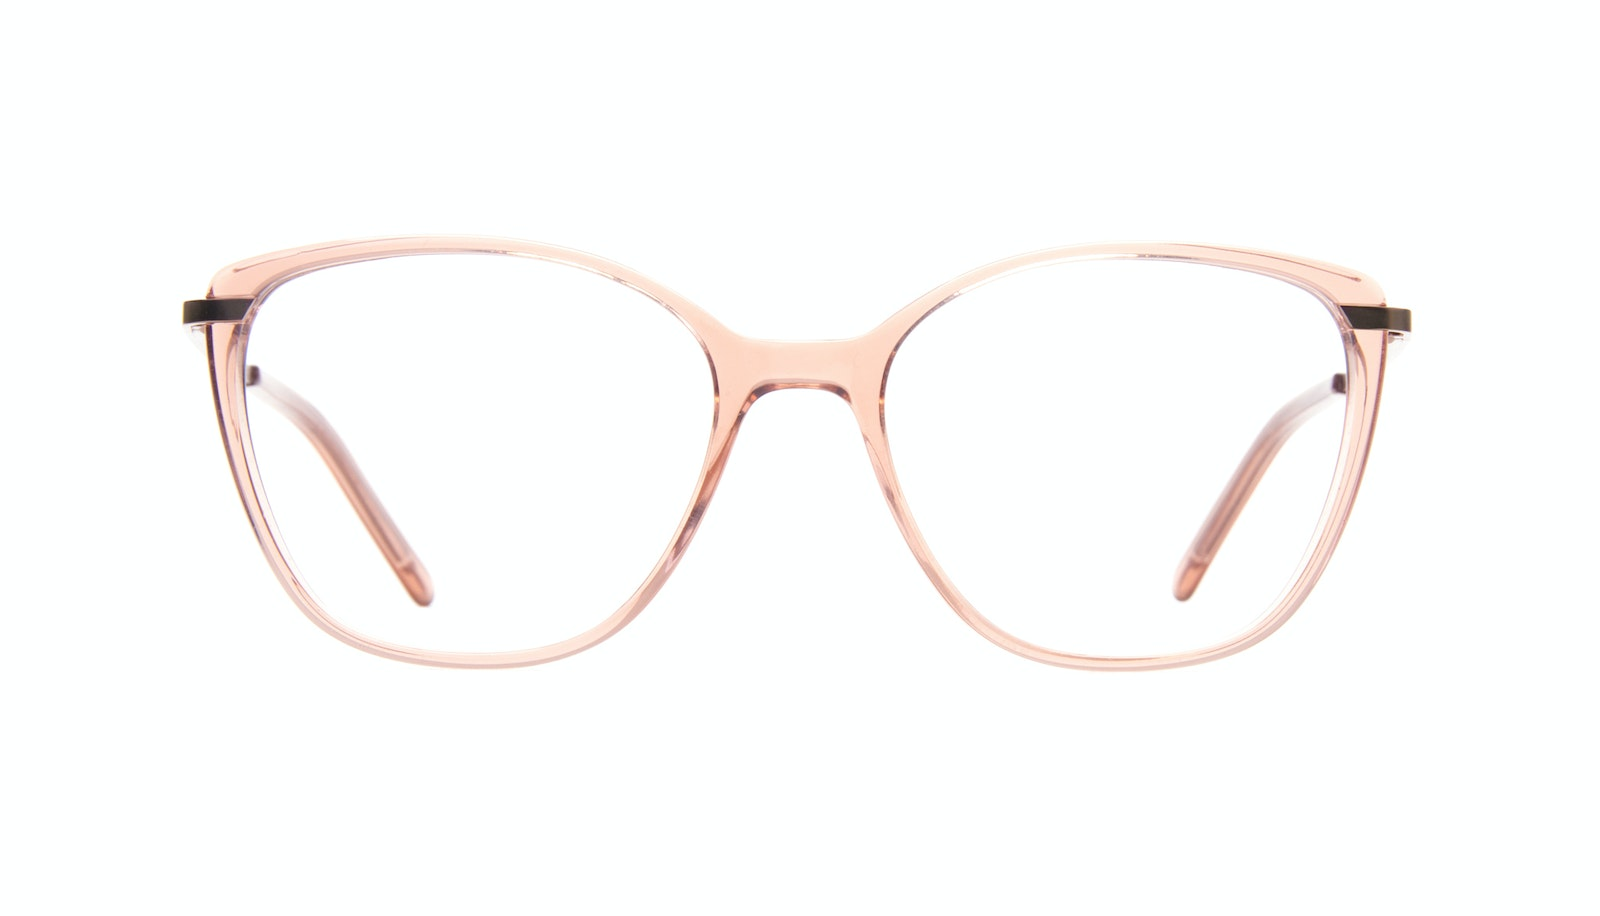 Affordable Fashion Glasses Rectangle Square Eyeglasses Women Illusion Rose